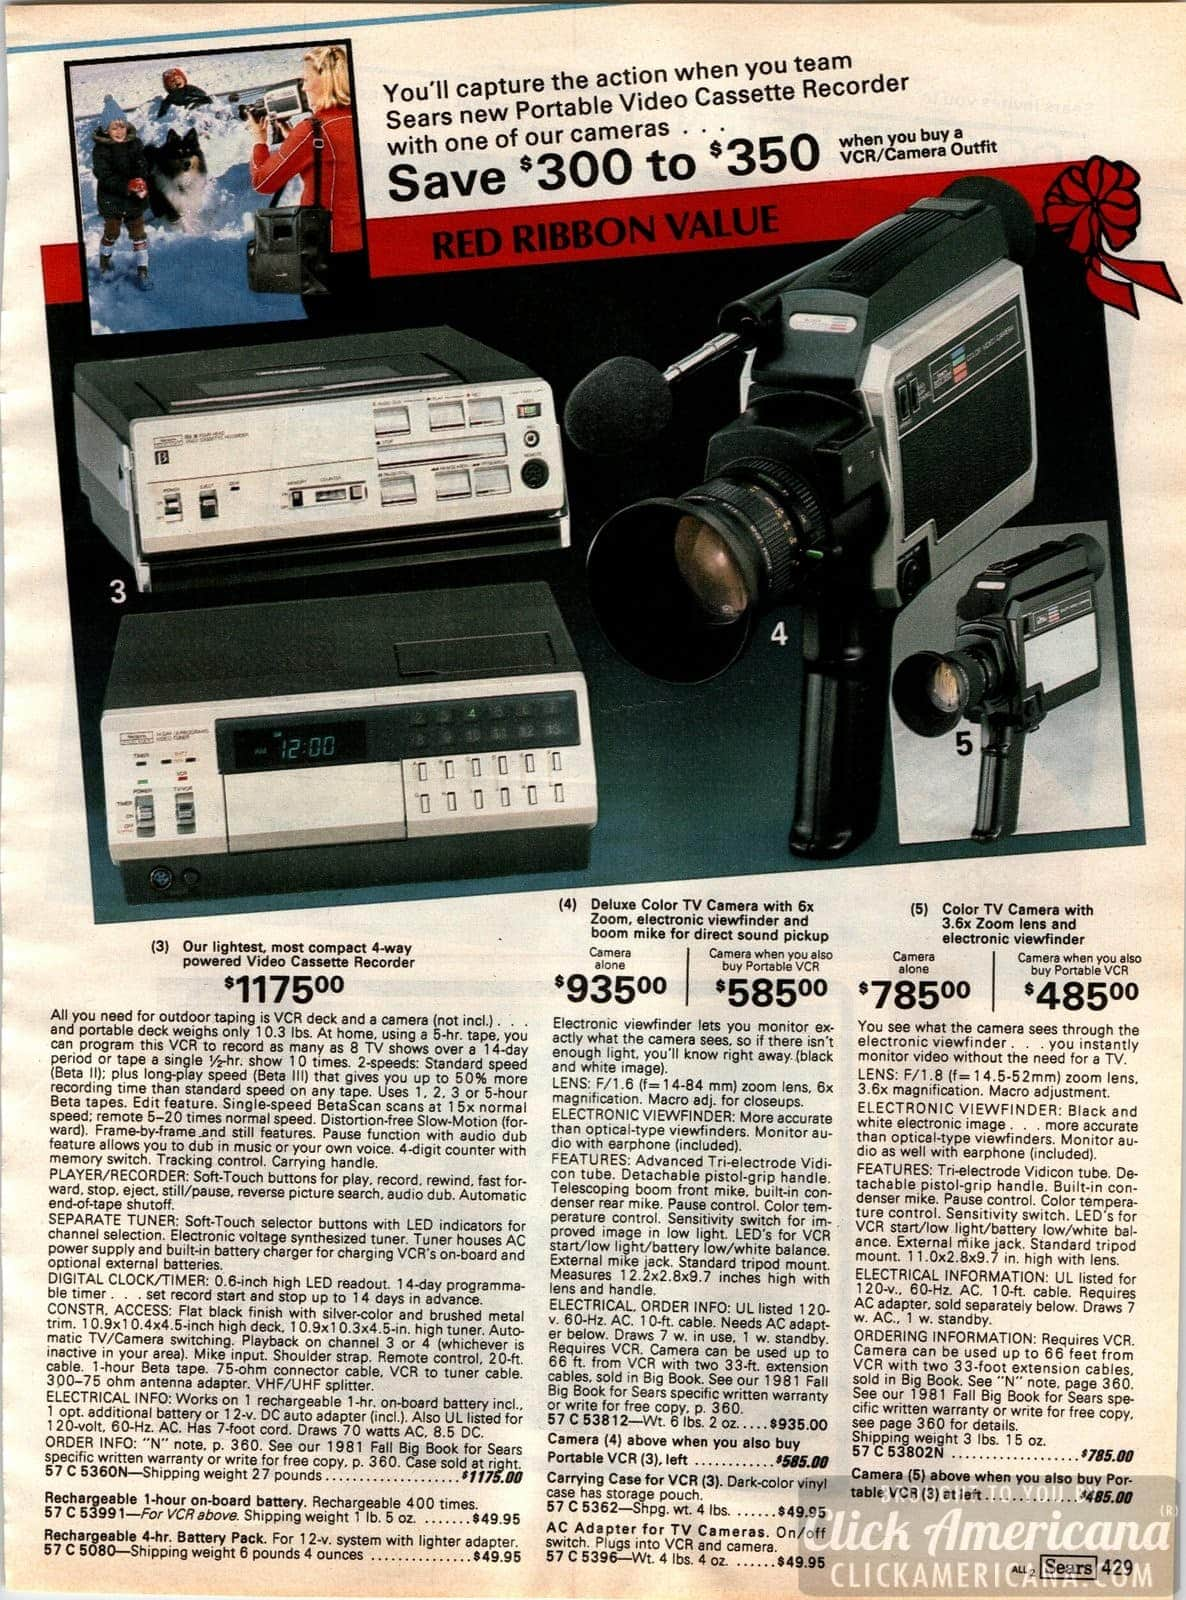 Retro stereos, tech & '80s electronics from the 1981 Sears catalog